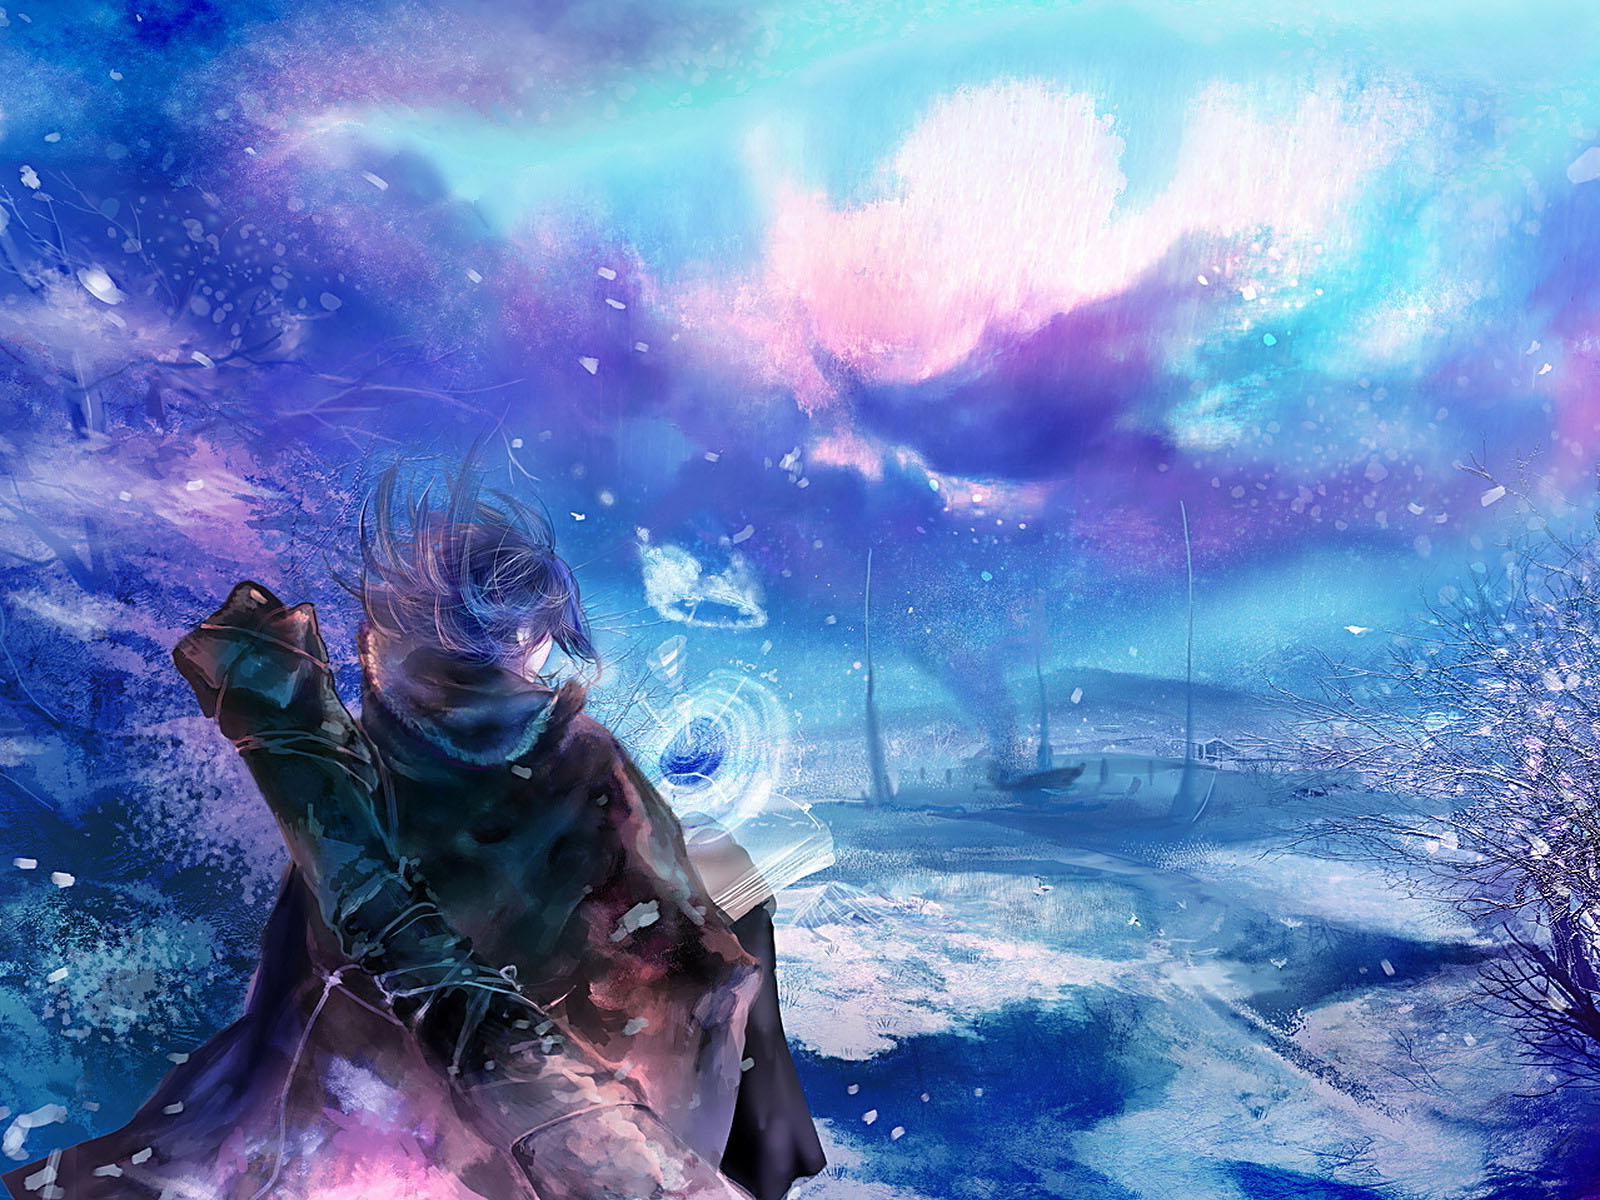 Best wallpapers collection best anime girls wallpapers ii - Best anime desktop backgrounds ...